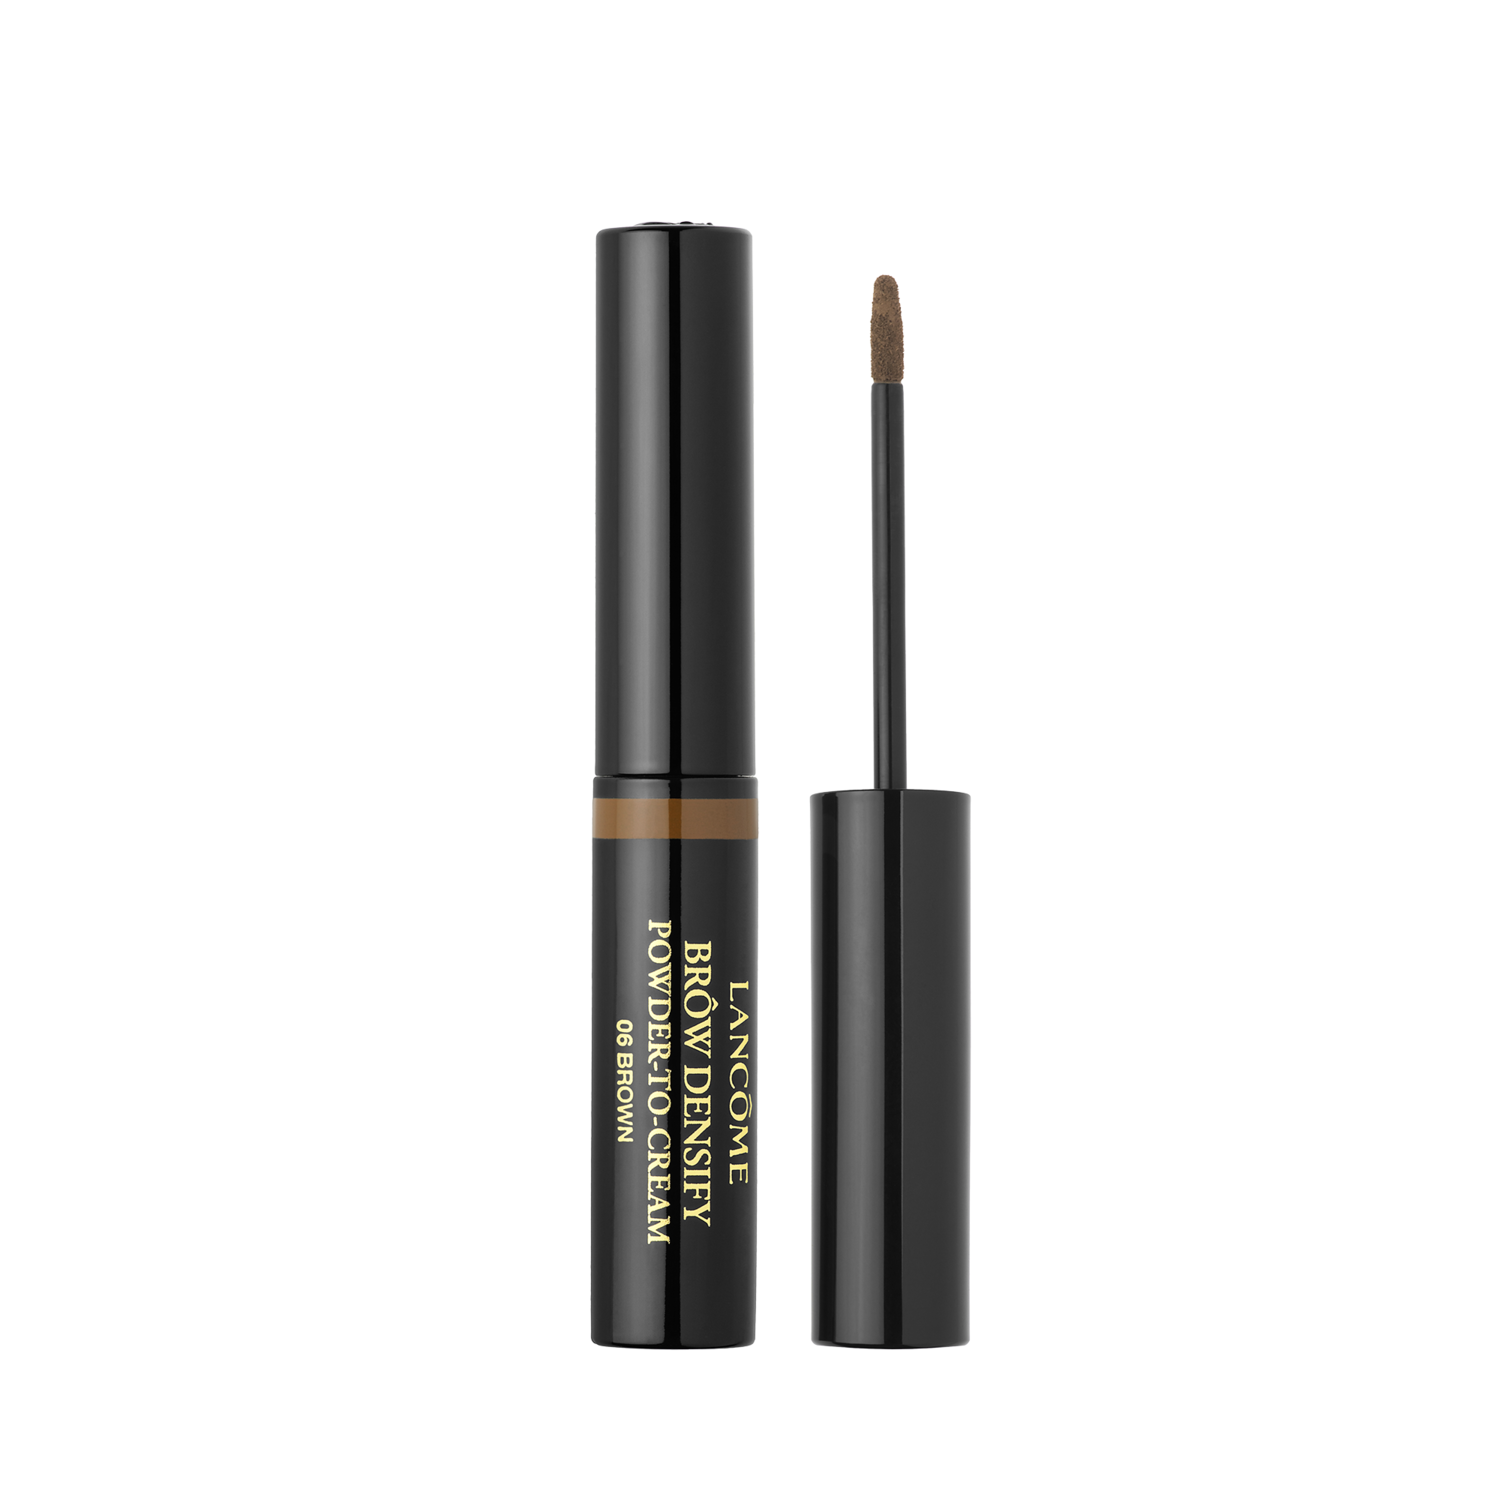 BROW DENSIFY POWDER TO CREAM 06